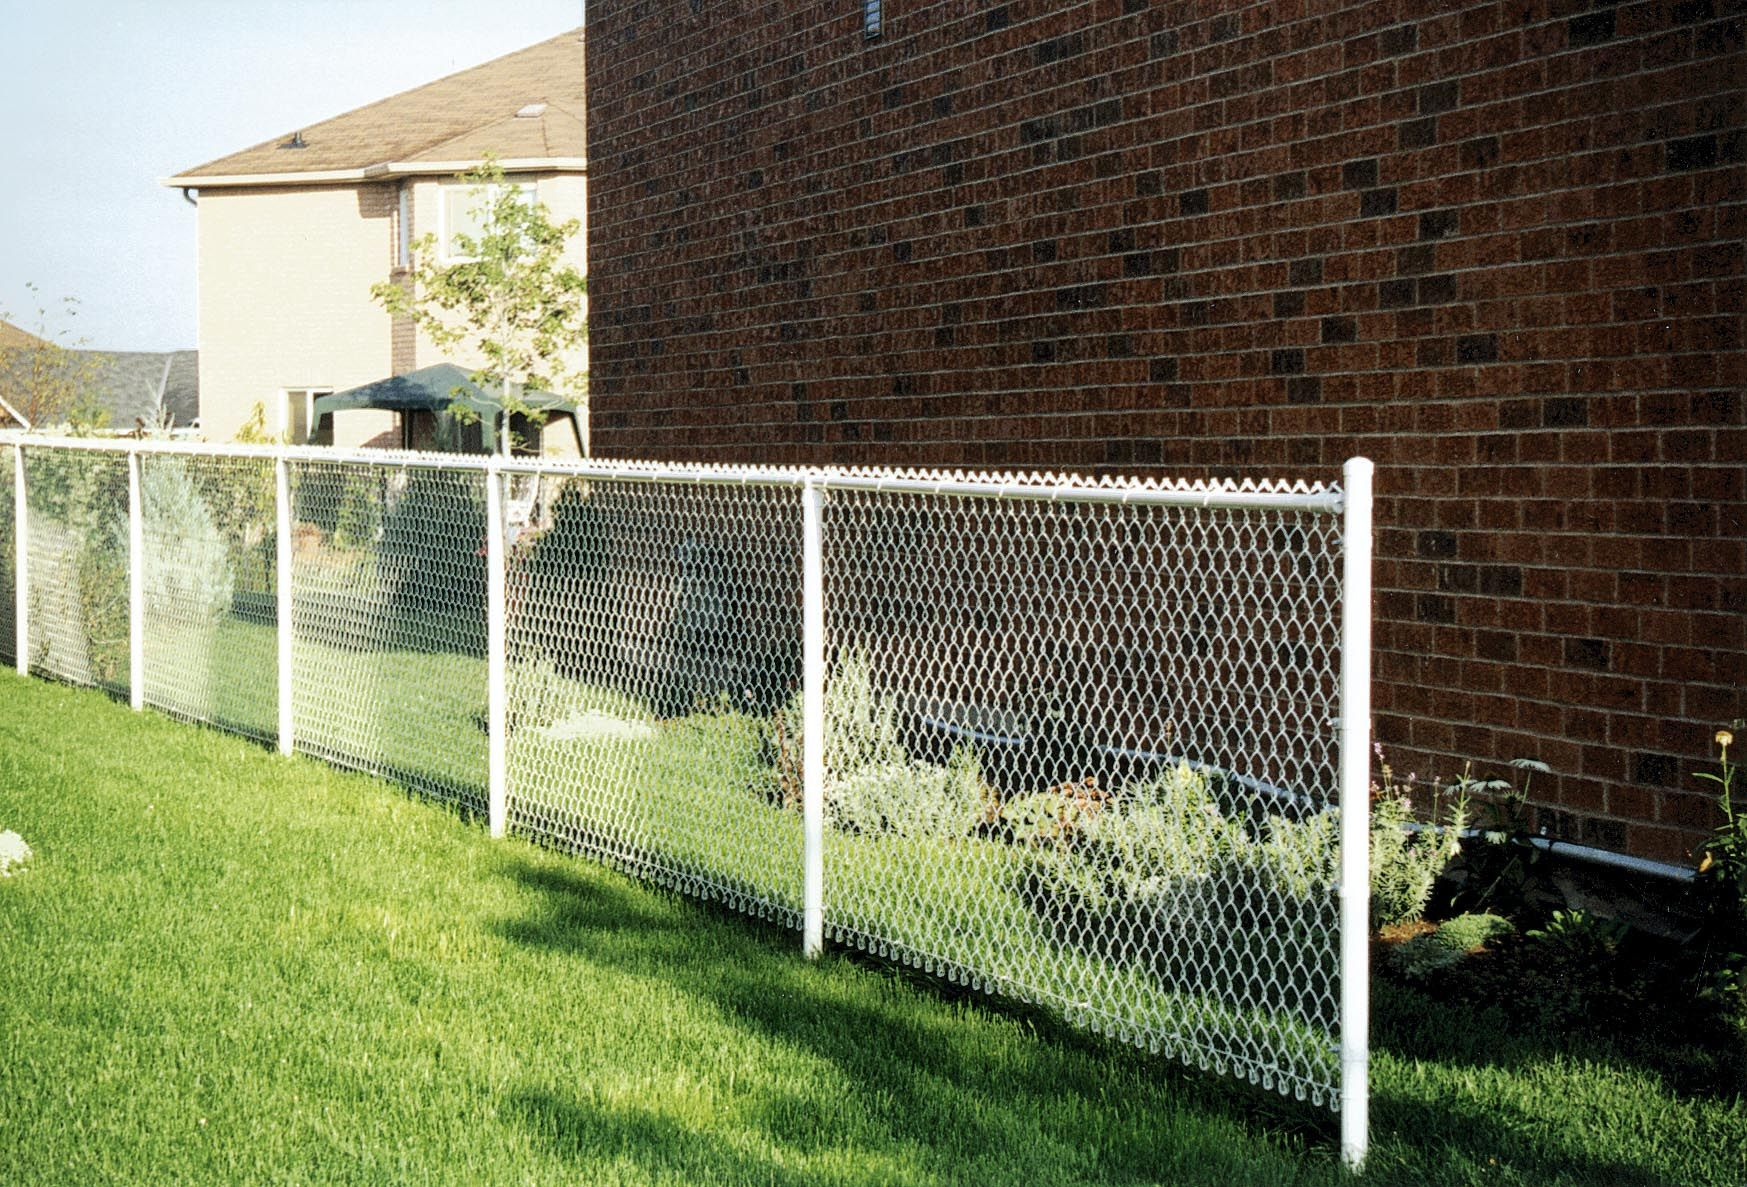 White Chain Link Fencing Residential Chain Link Fence Backyard Fences Outdoor Fencing